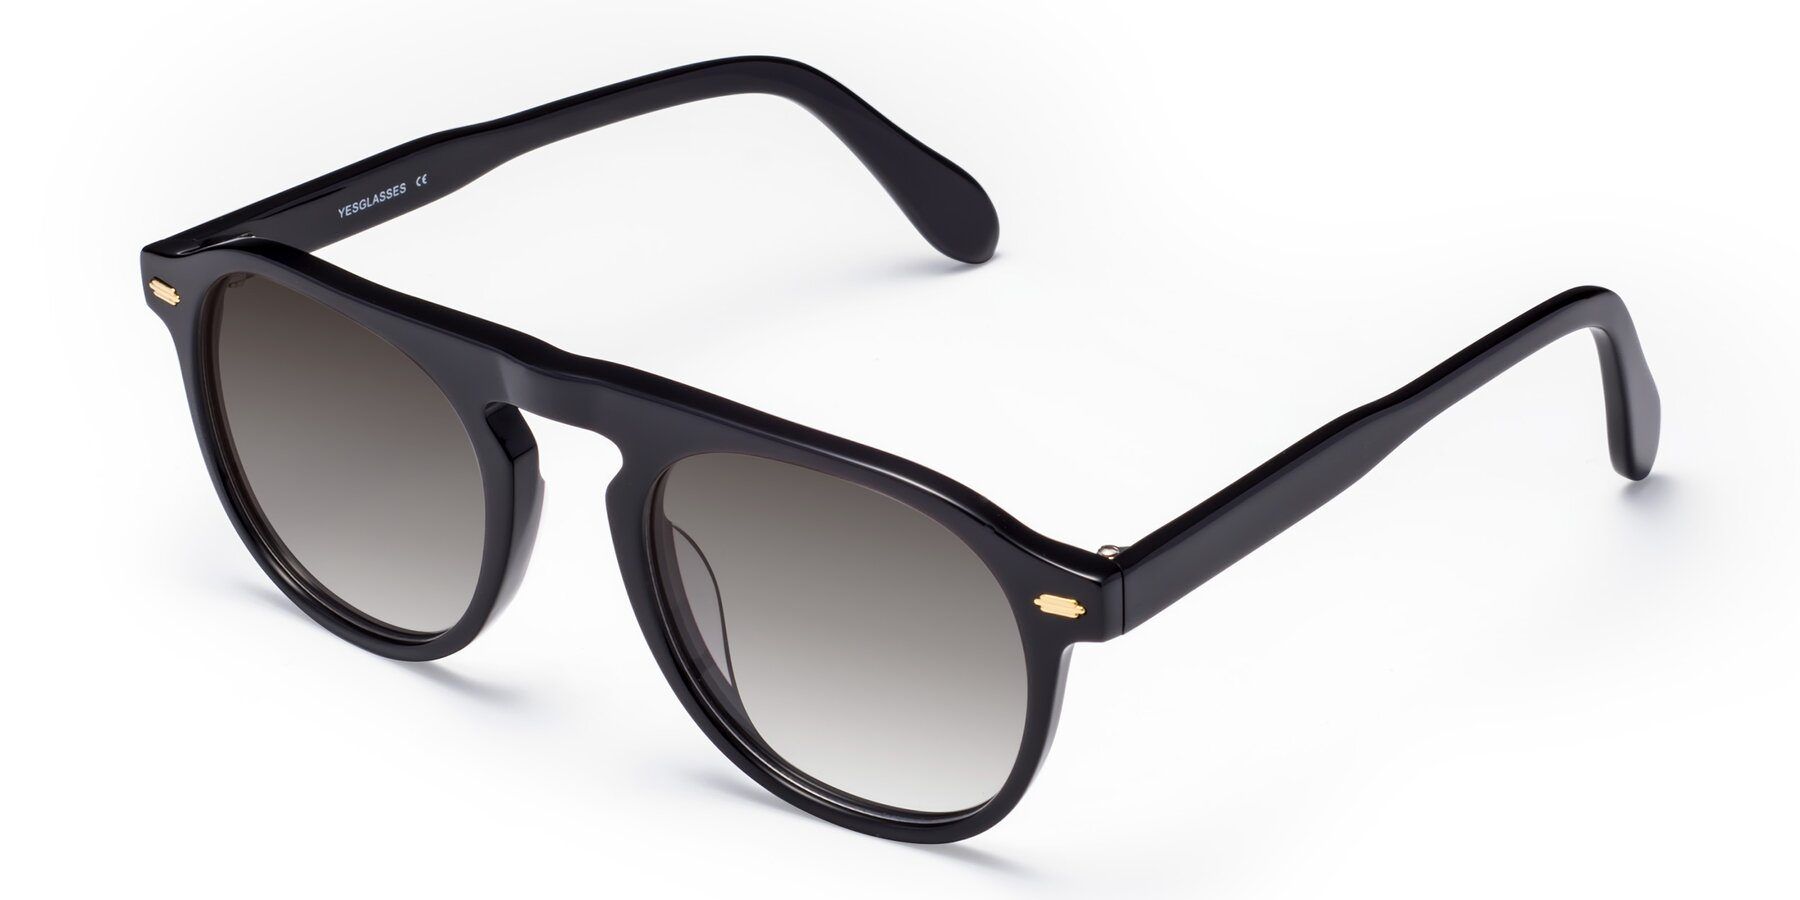 Angle of Mufasa in Black with Gray Gradient Lenses